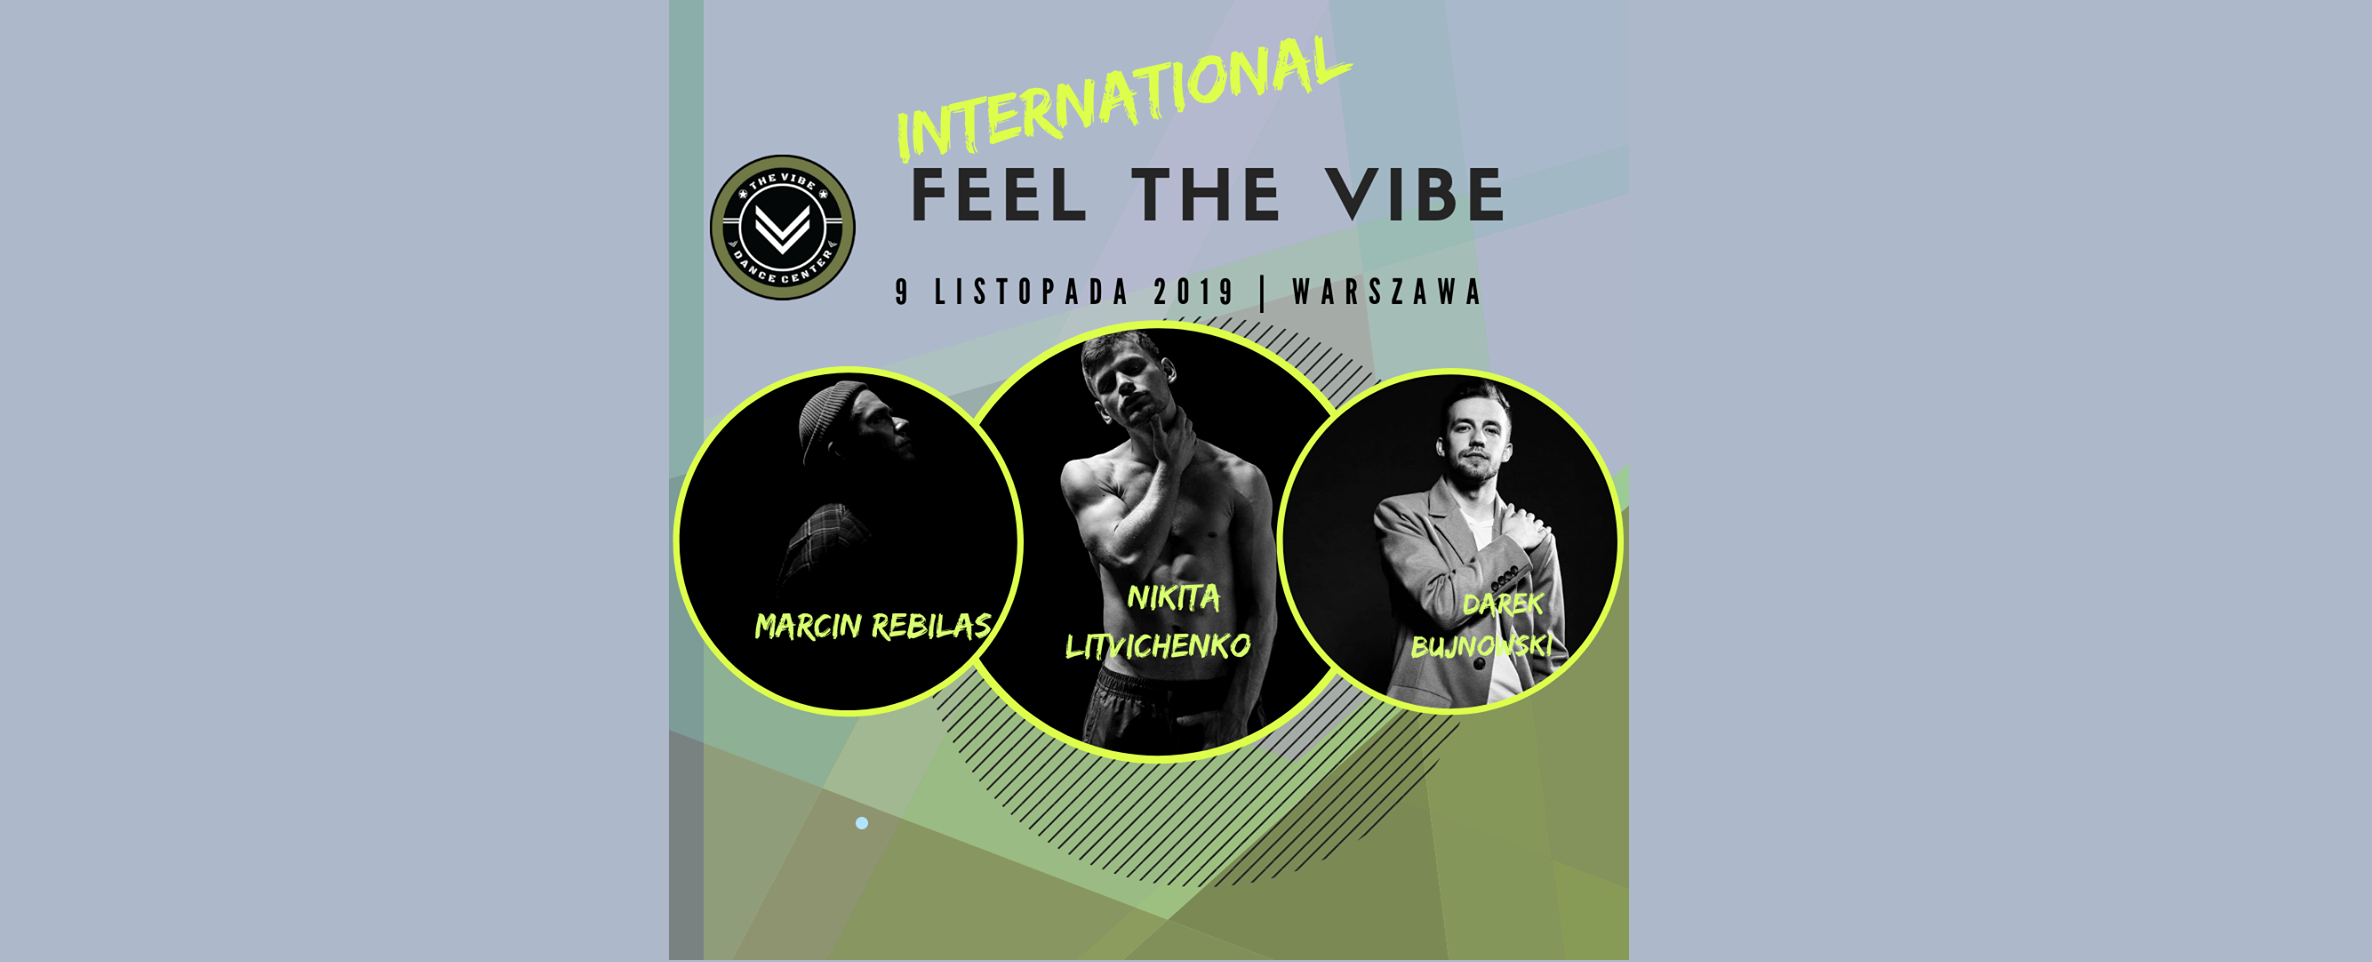 feel the vibe international 4